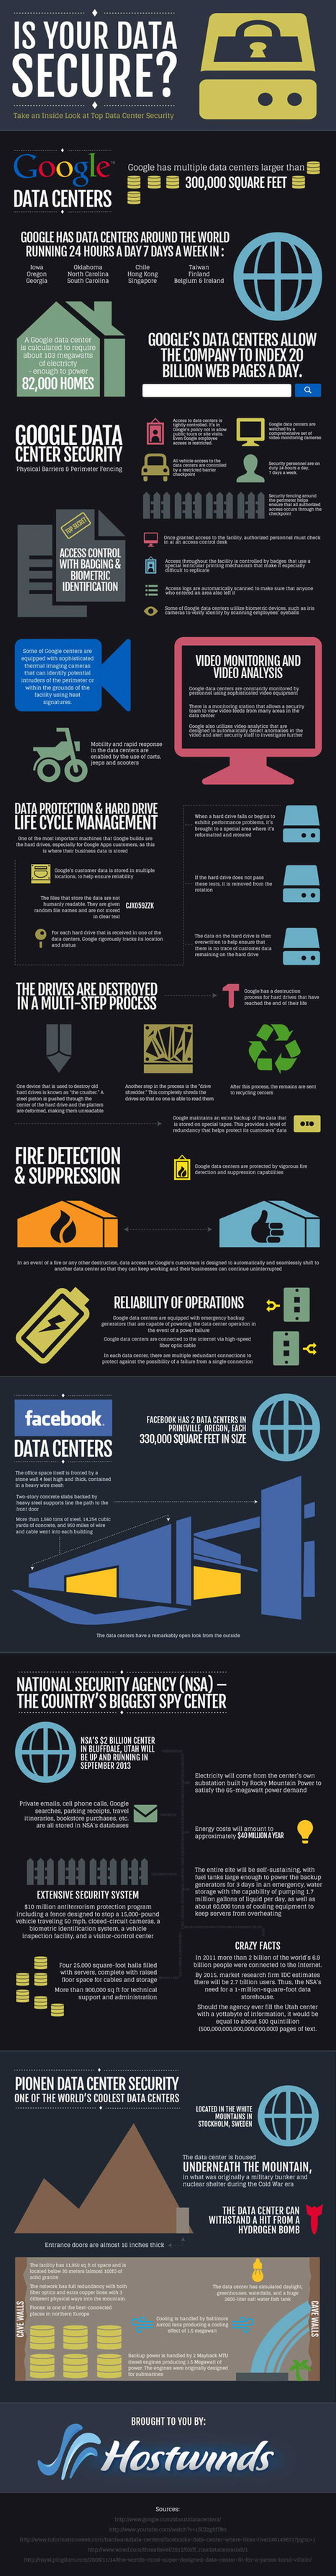 INFOGRAPHIC: Is Your Data Secure? | Future of Cloud Computing and IoT | Scoop.it